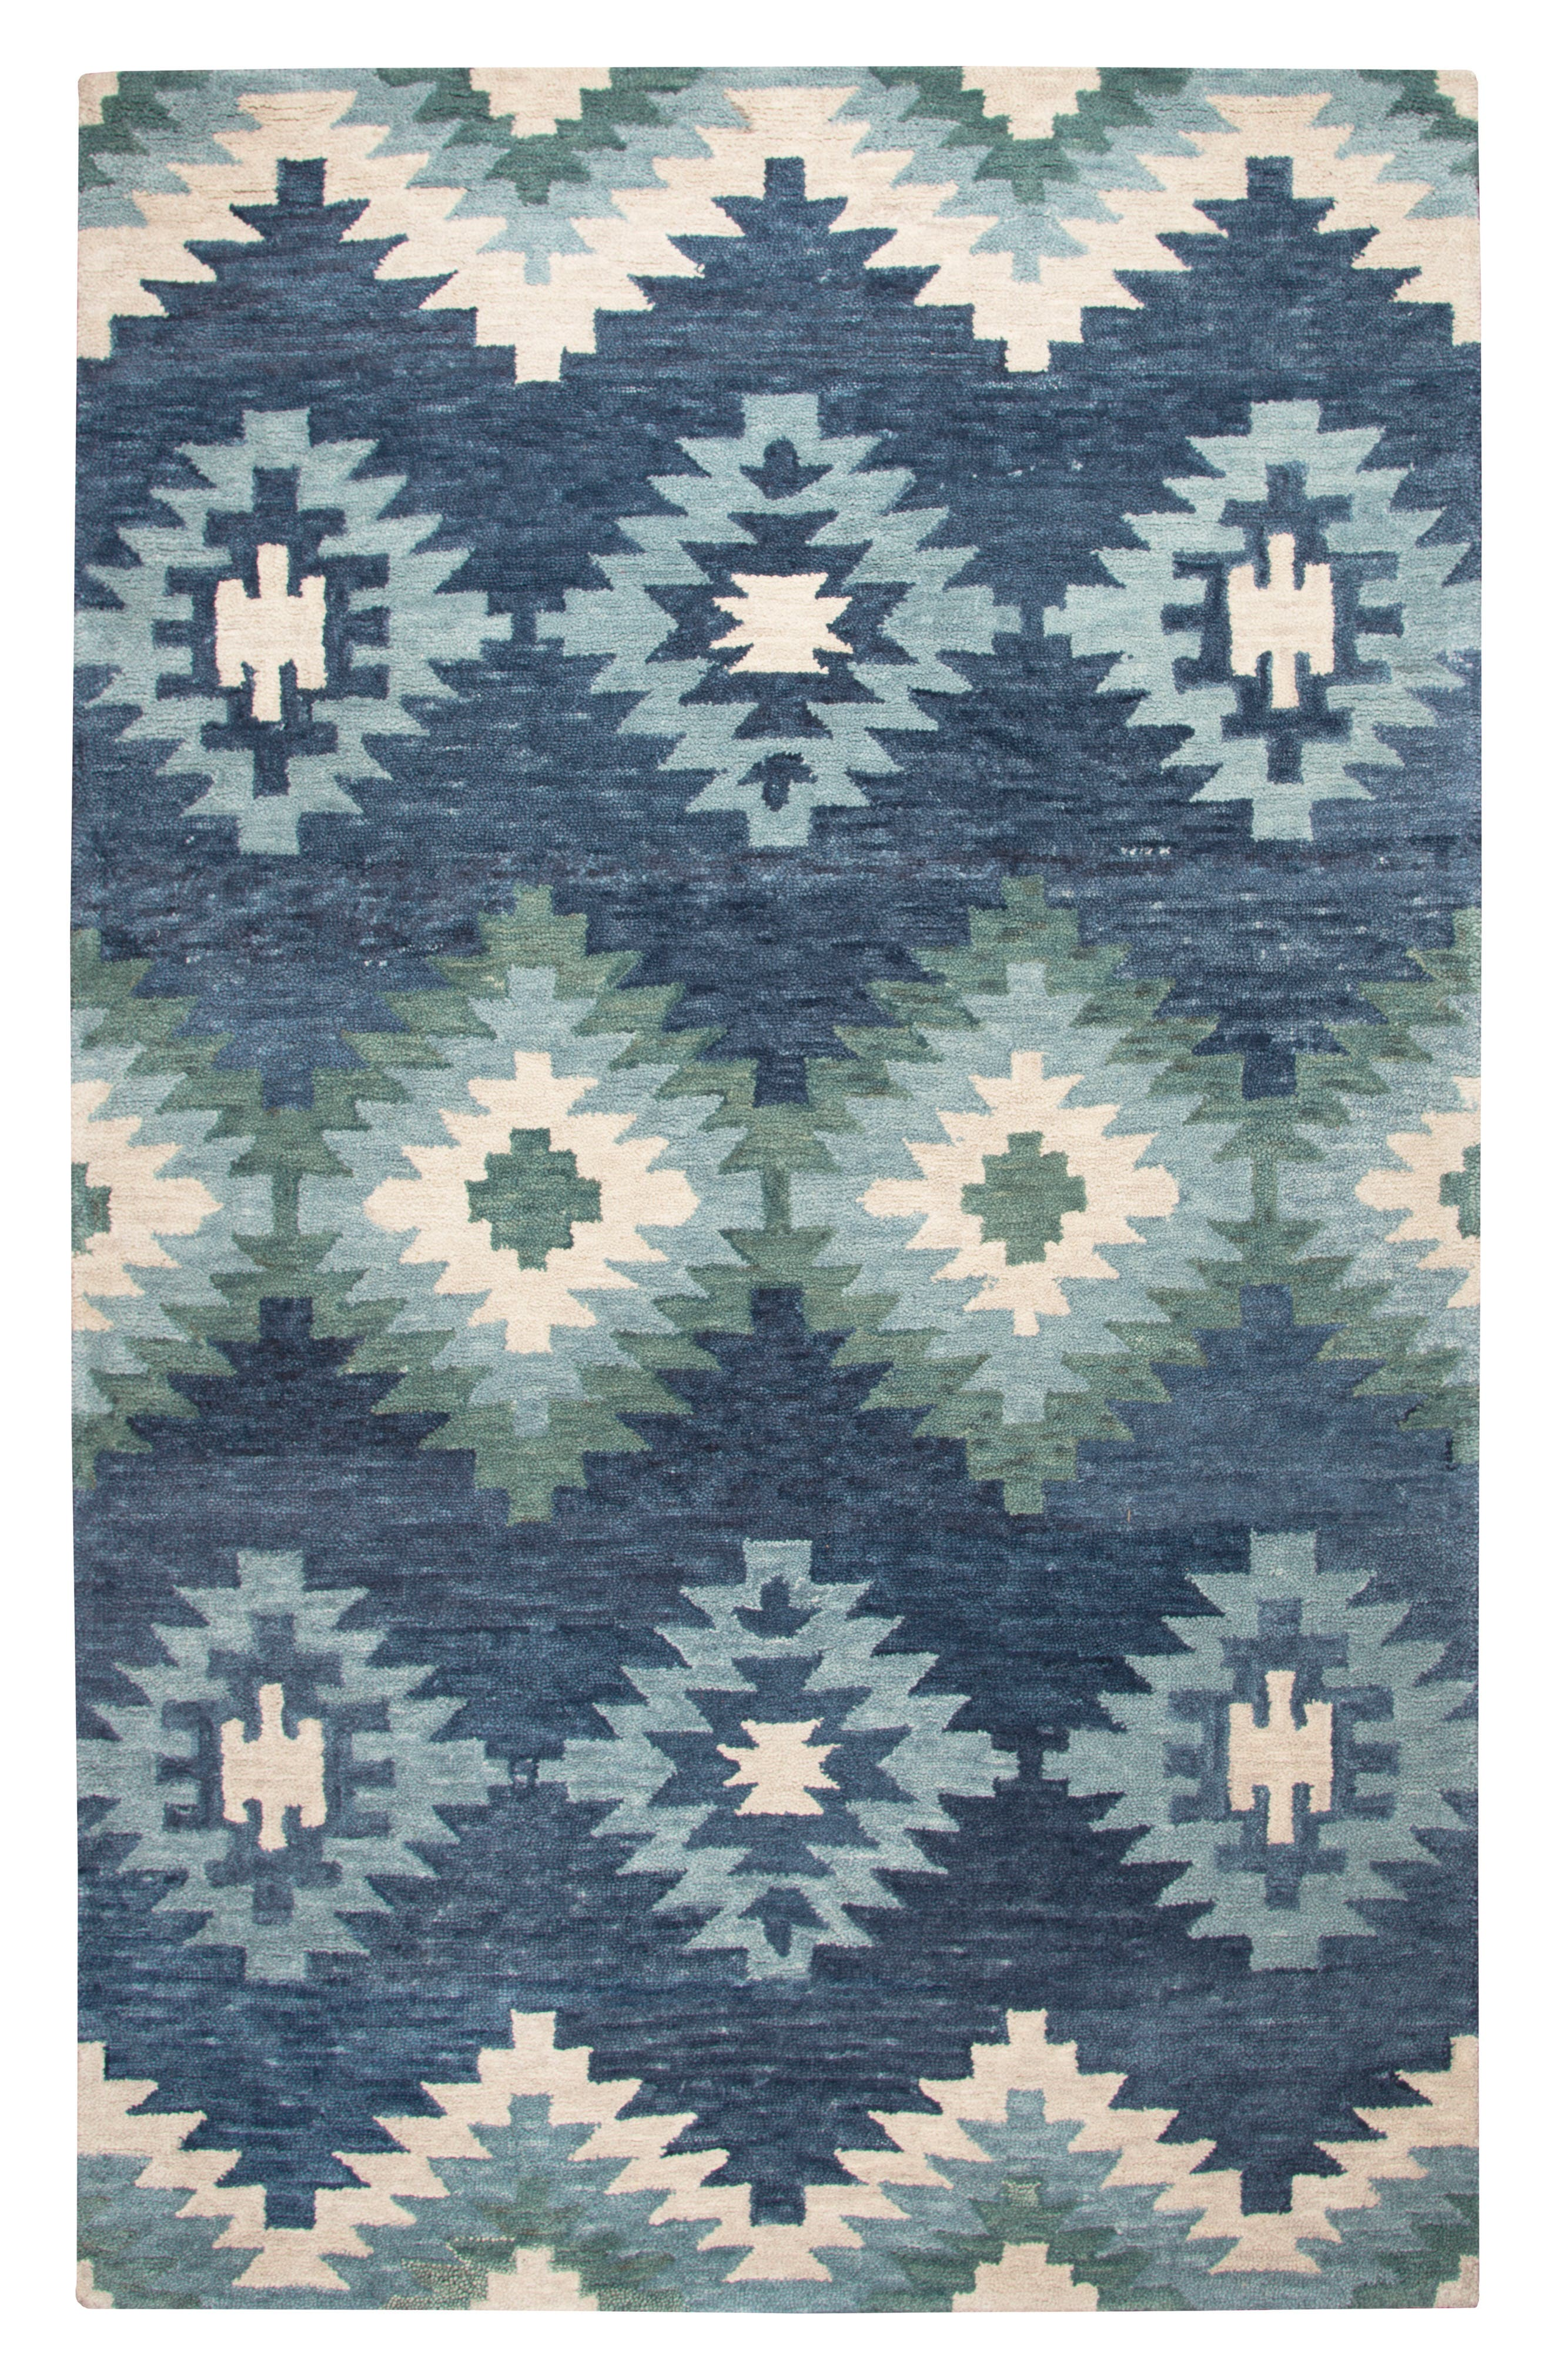 Taos Hand Tufted Wool Area Rug,                         Main,                         color, 400